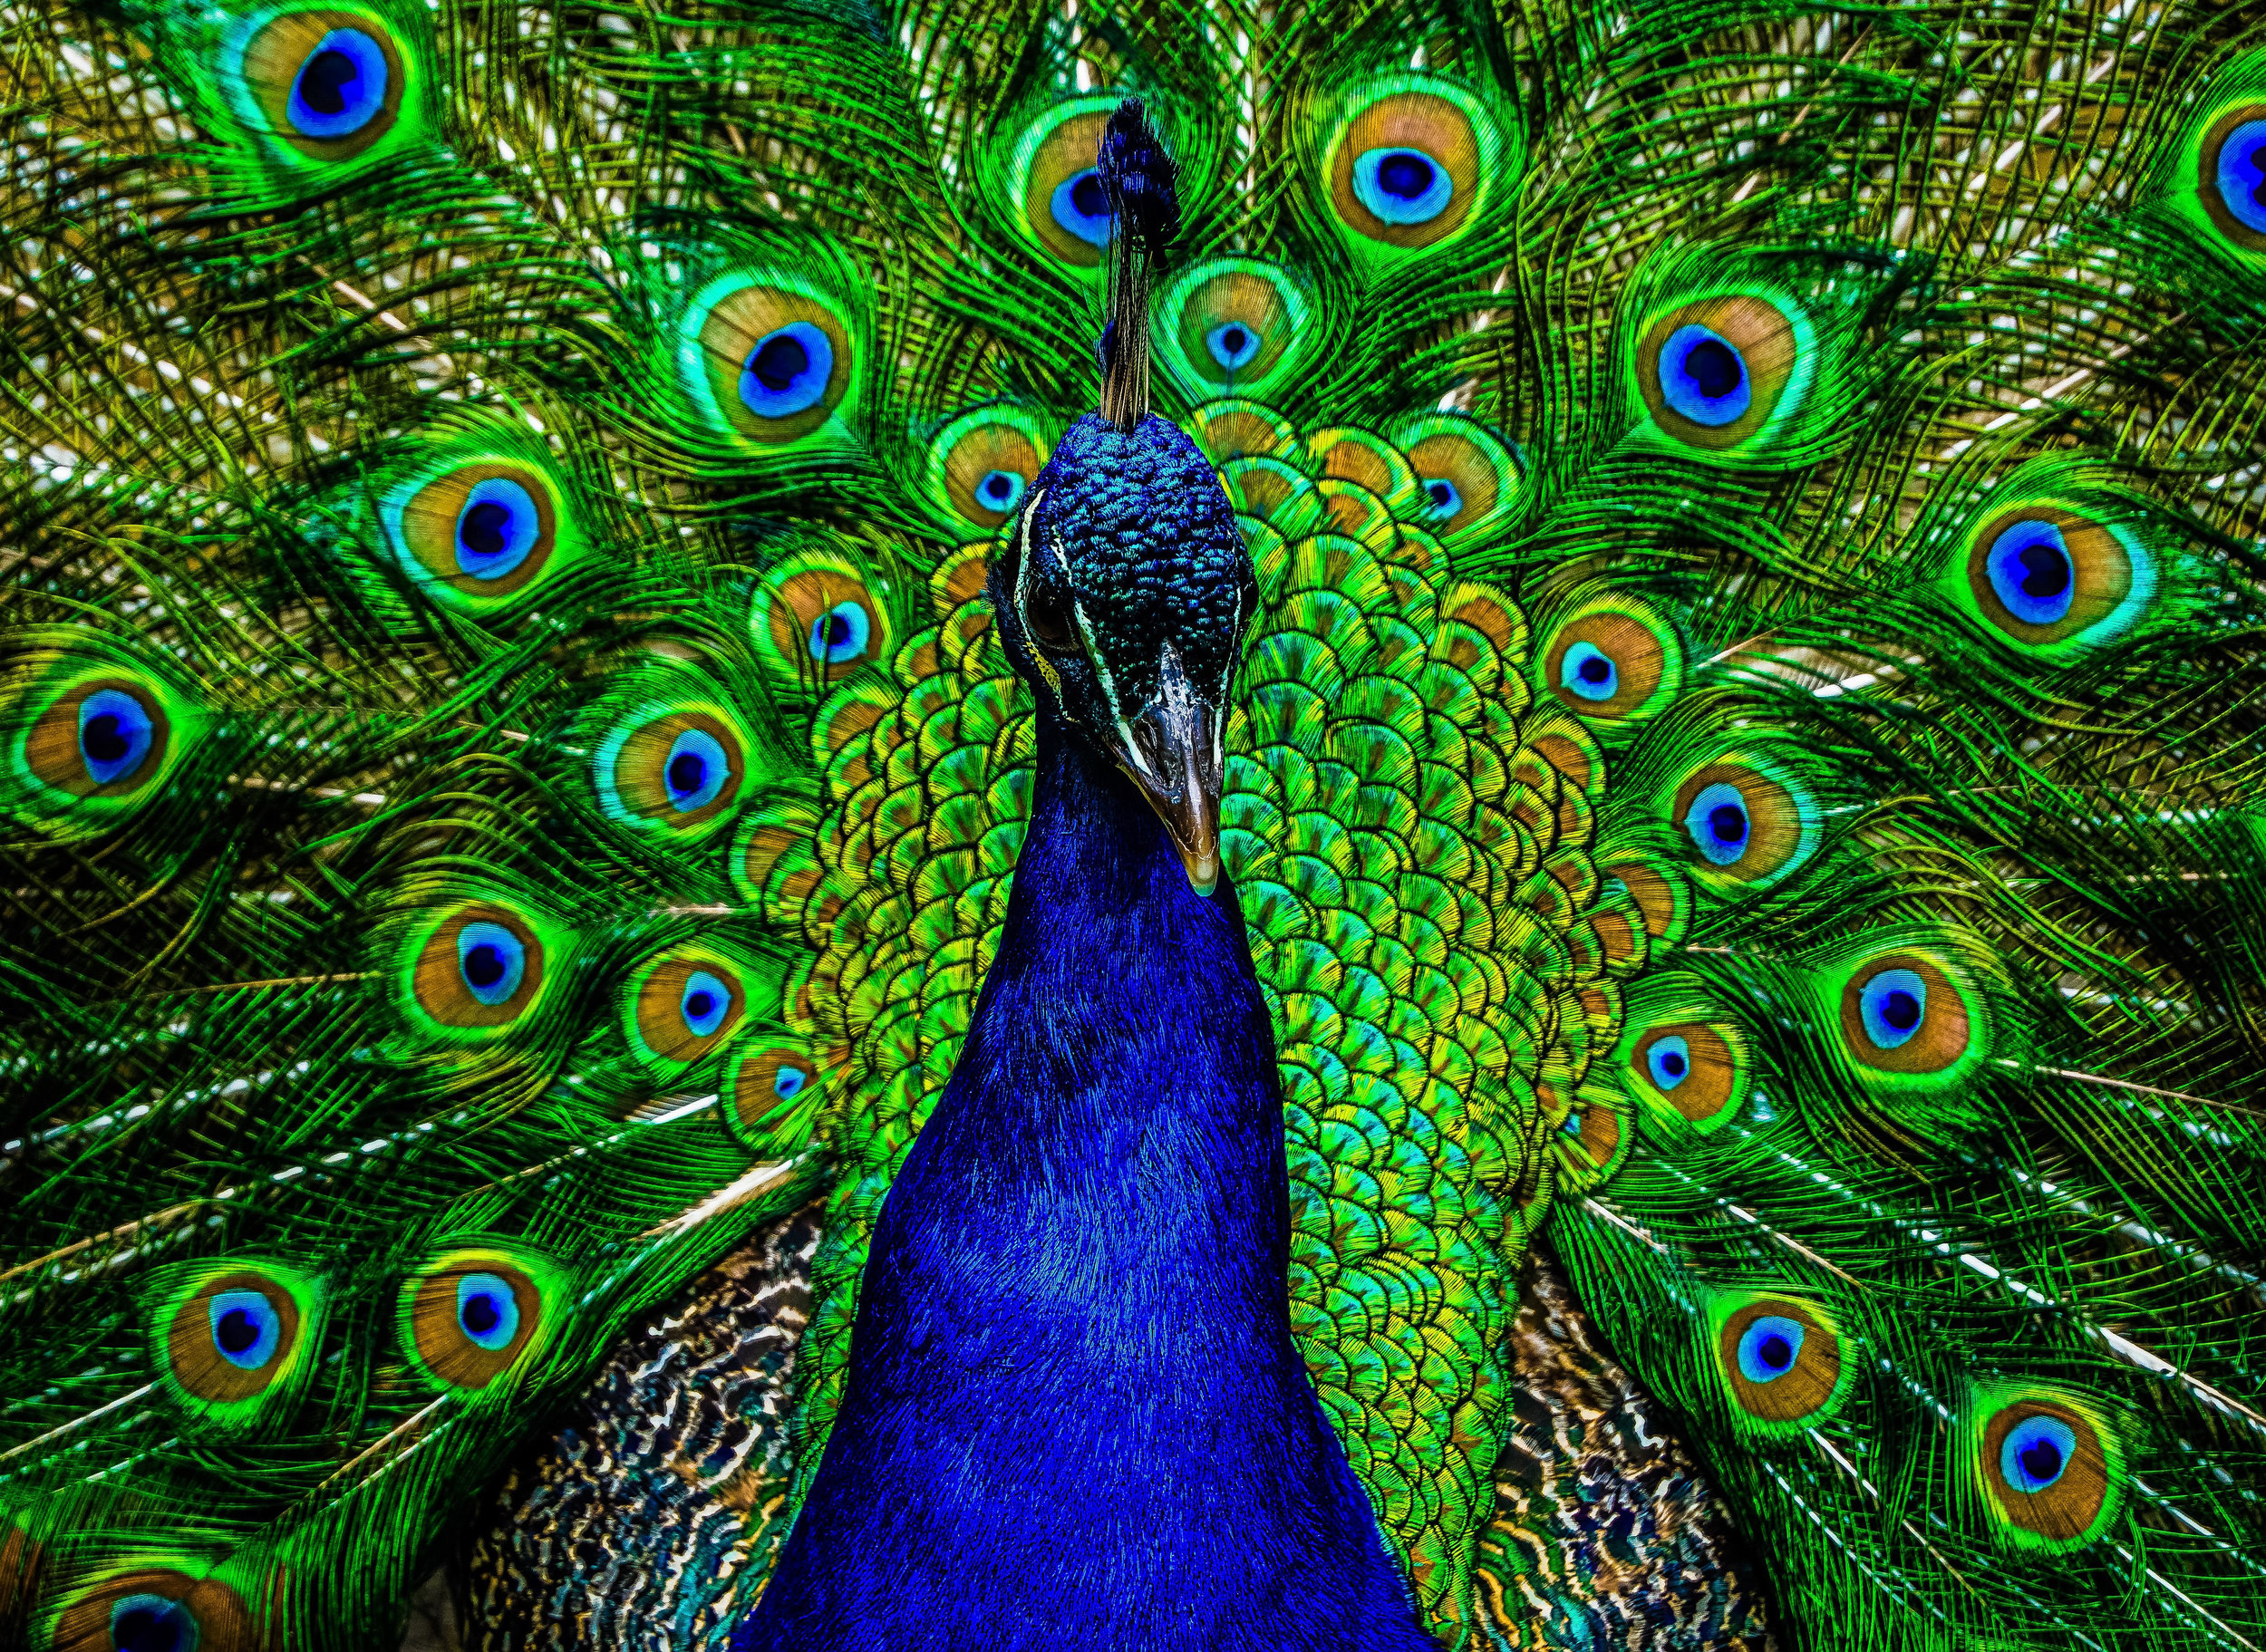 Peacock Resized.jpg